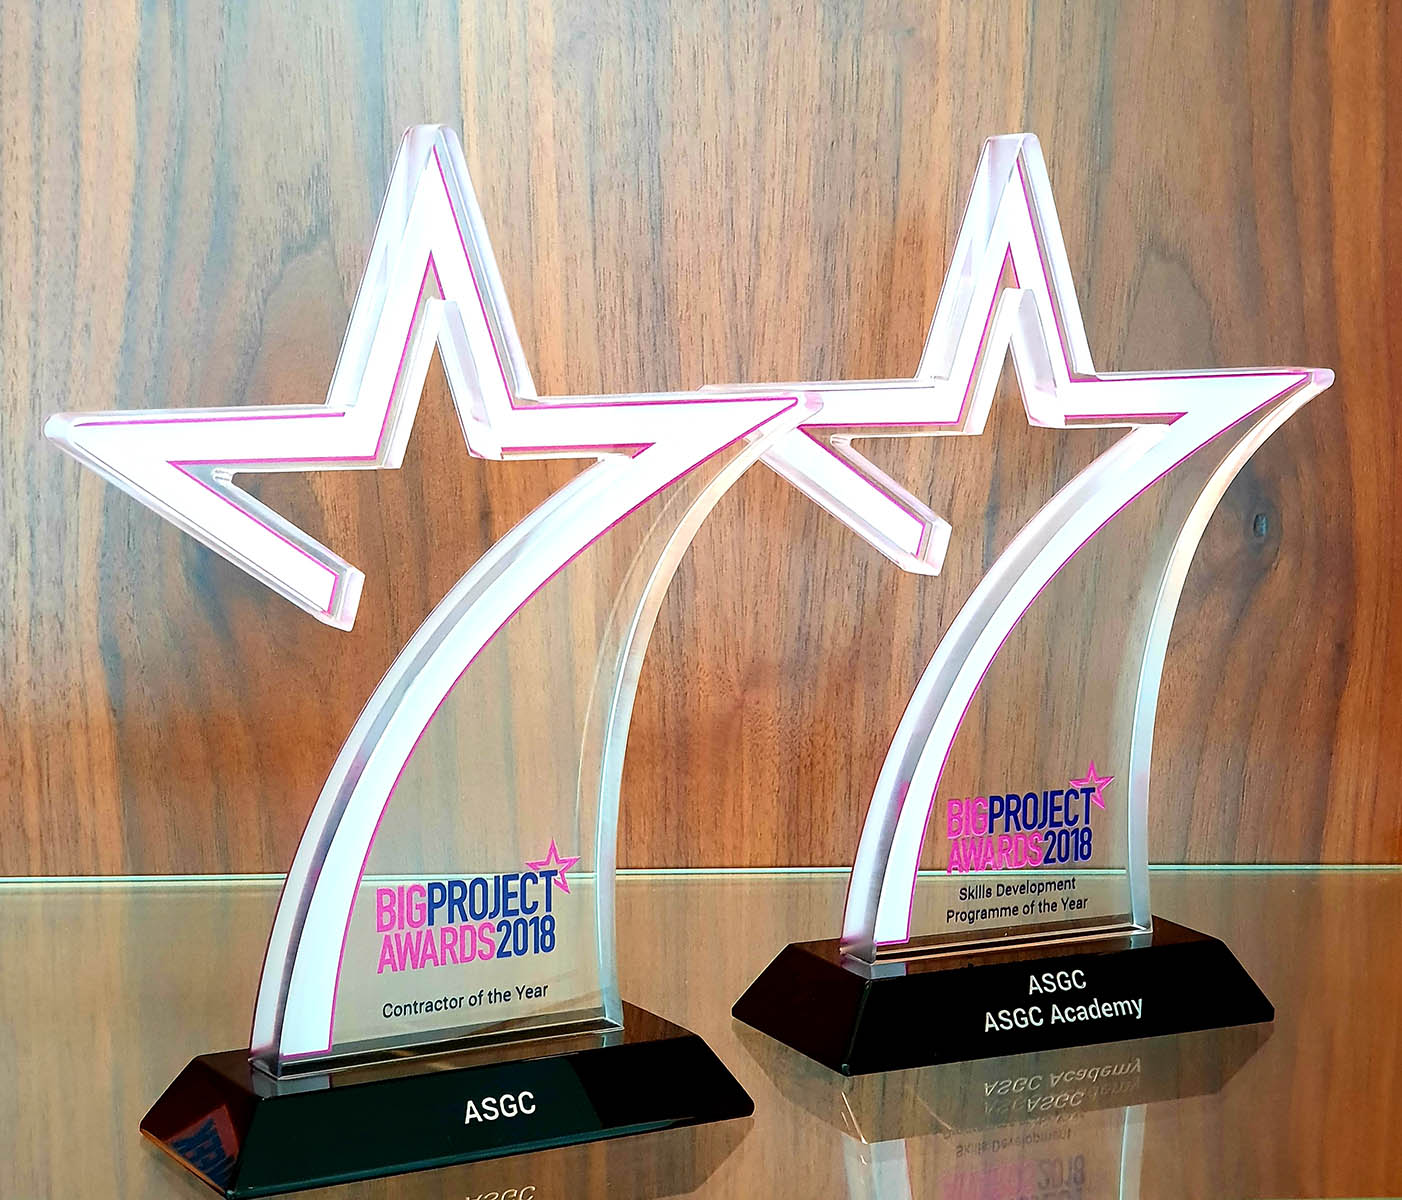 Contractor of the Year Award 2018 & Skills Development Program of the Year Award 2018 By Big Project